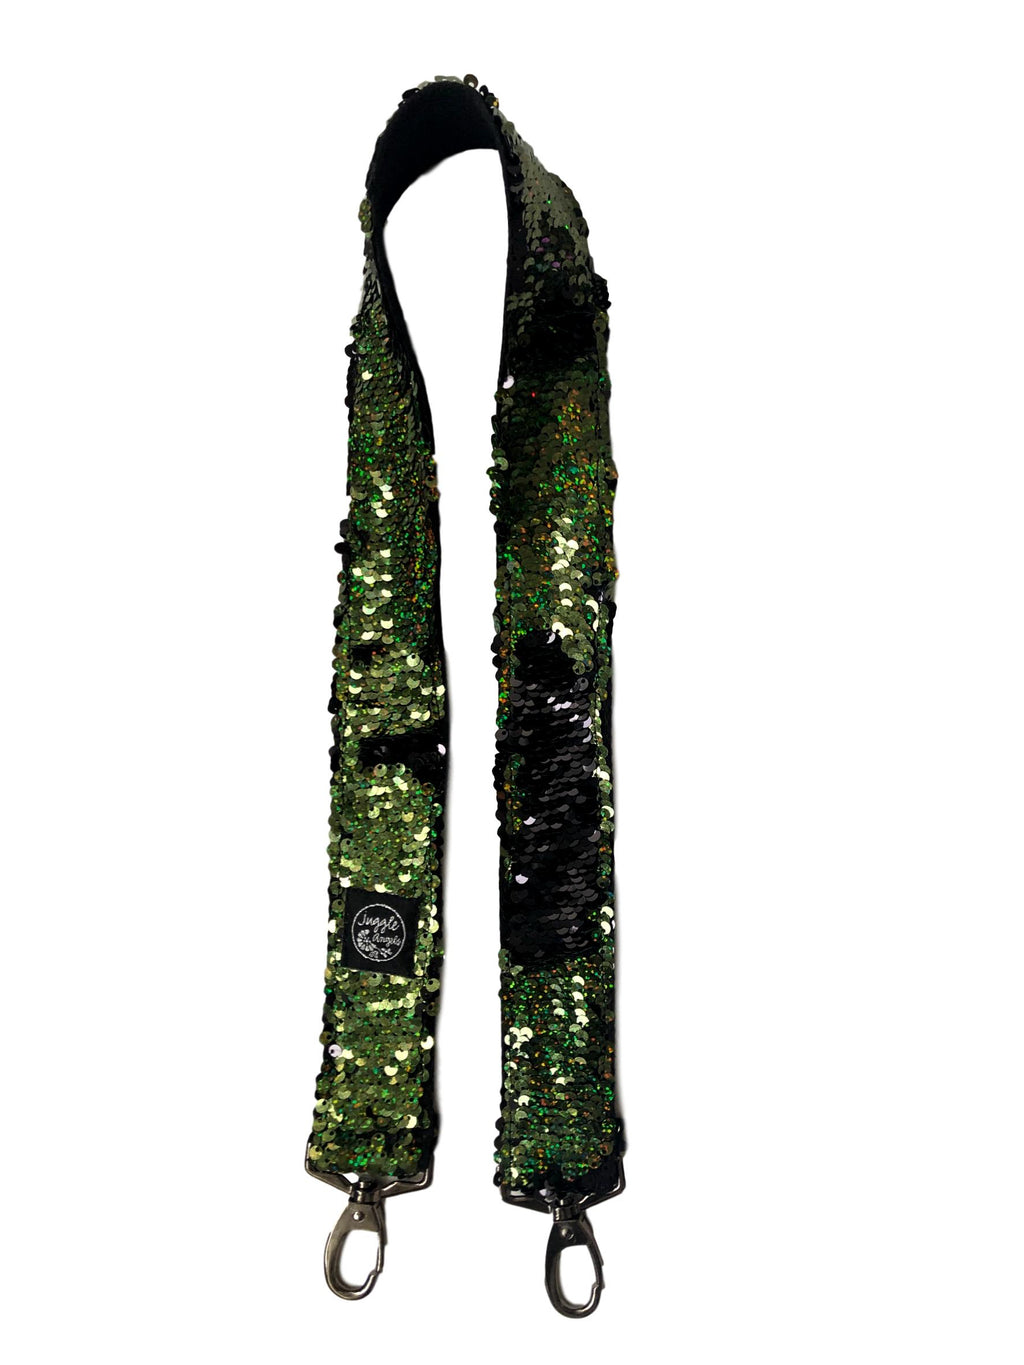 Green Sequins handbag Strap